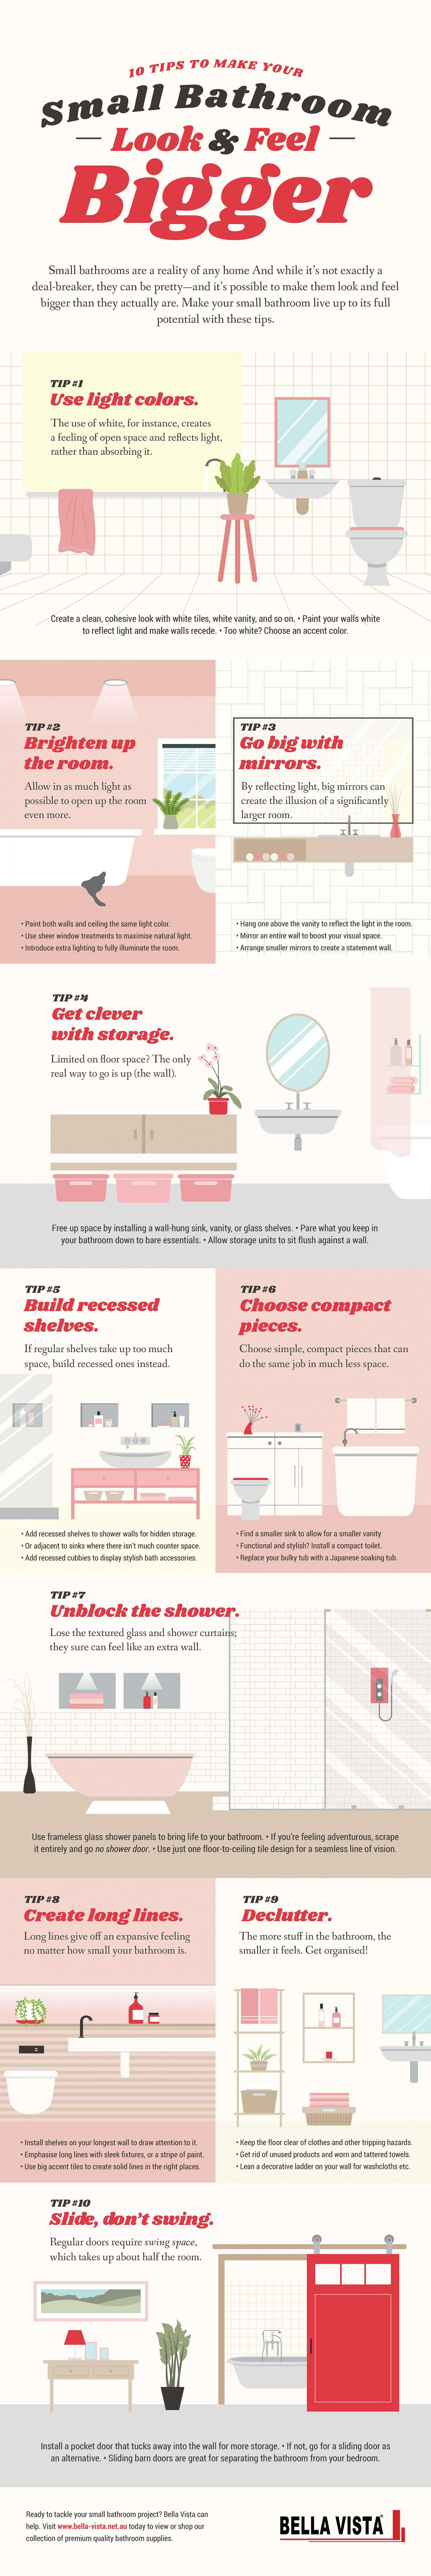 Ten Tips to Make Your Bathroom Look and Feel Bigger Infographic